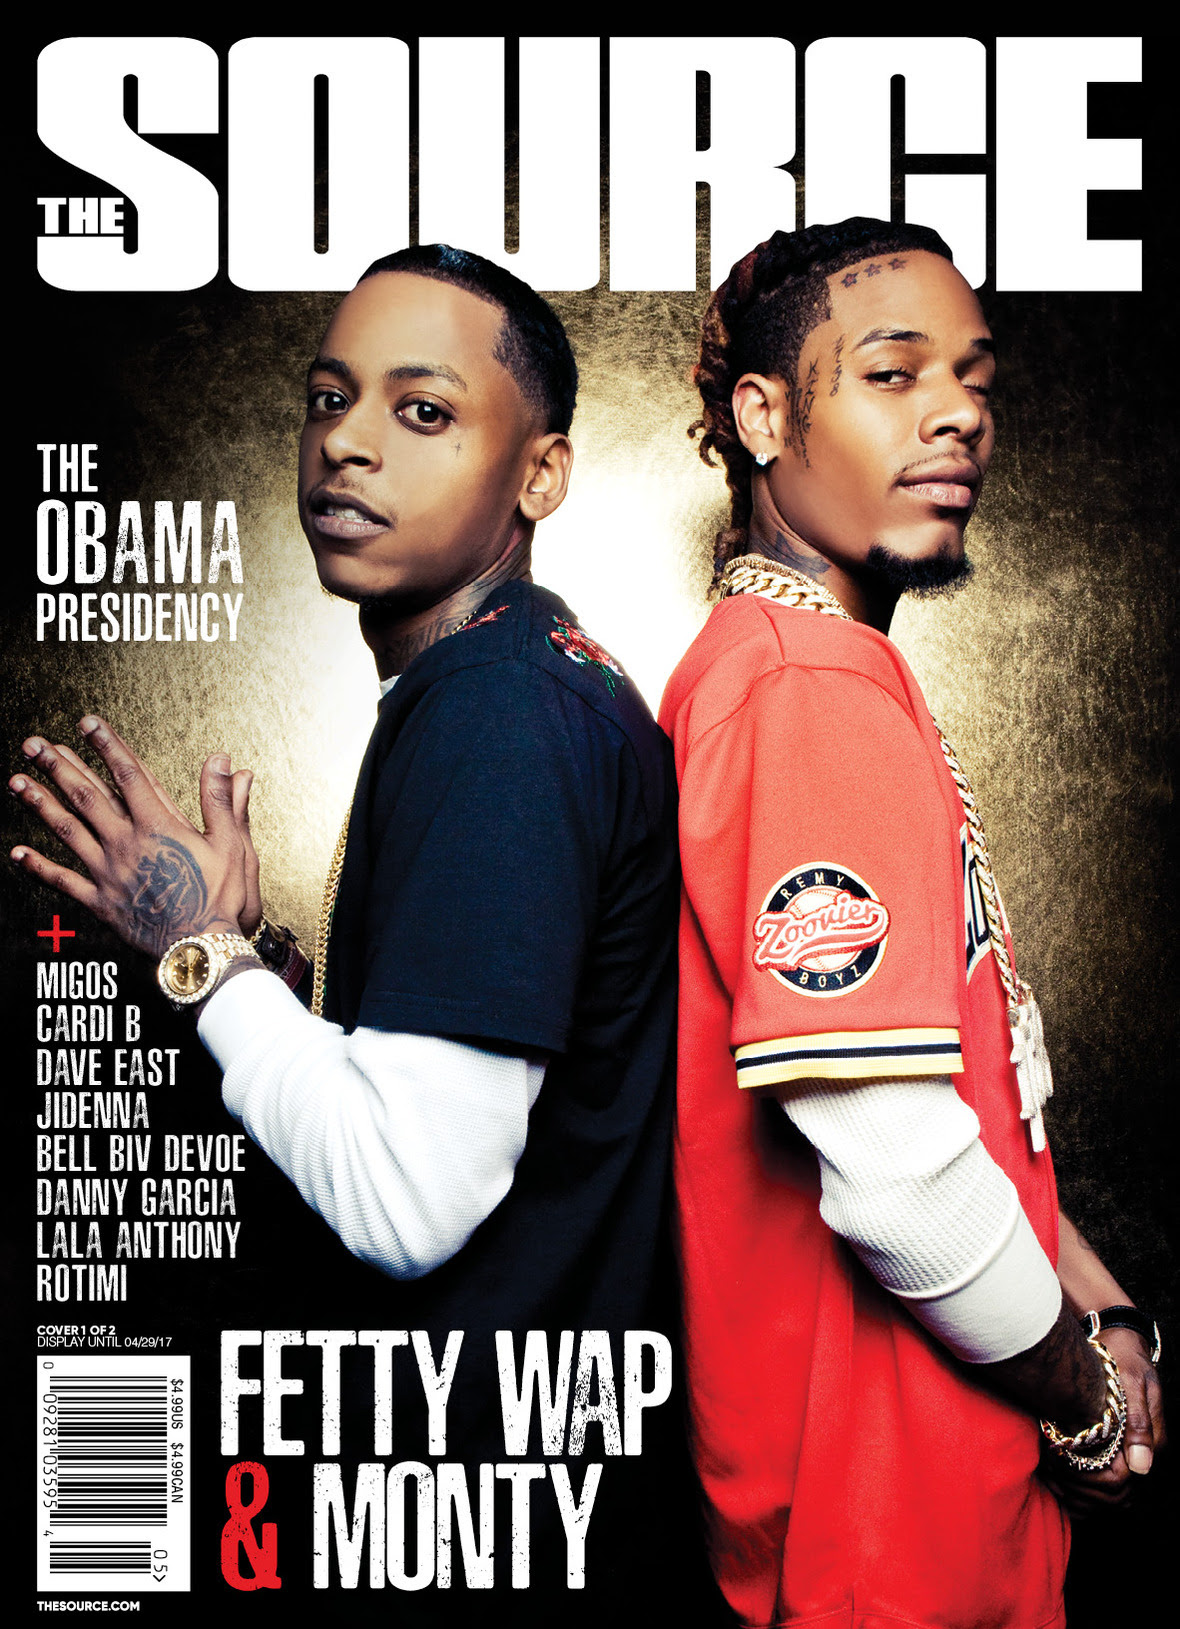 Fetty Wap & Monty Cover The Source | HipHop-N-More